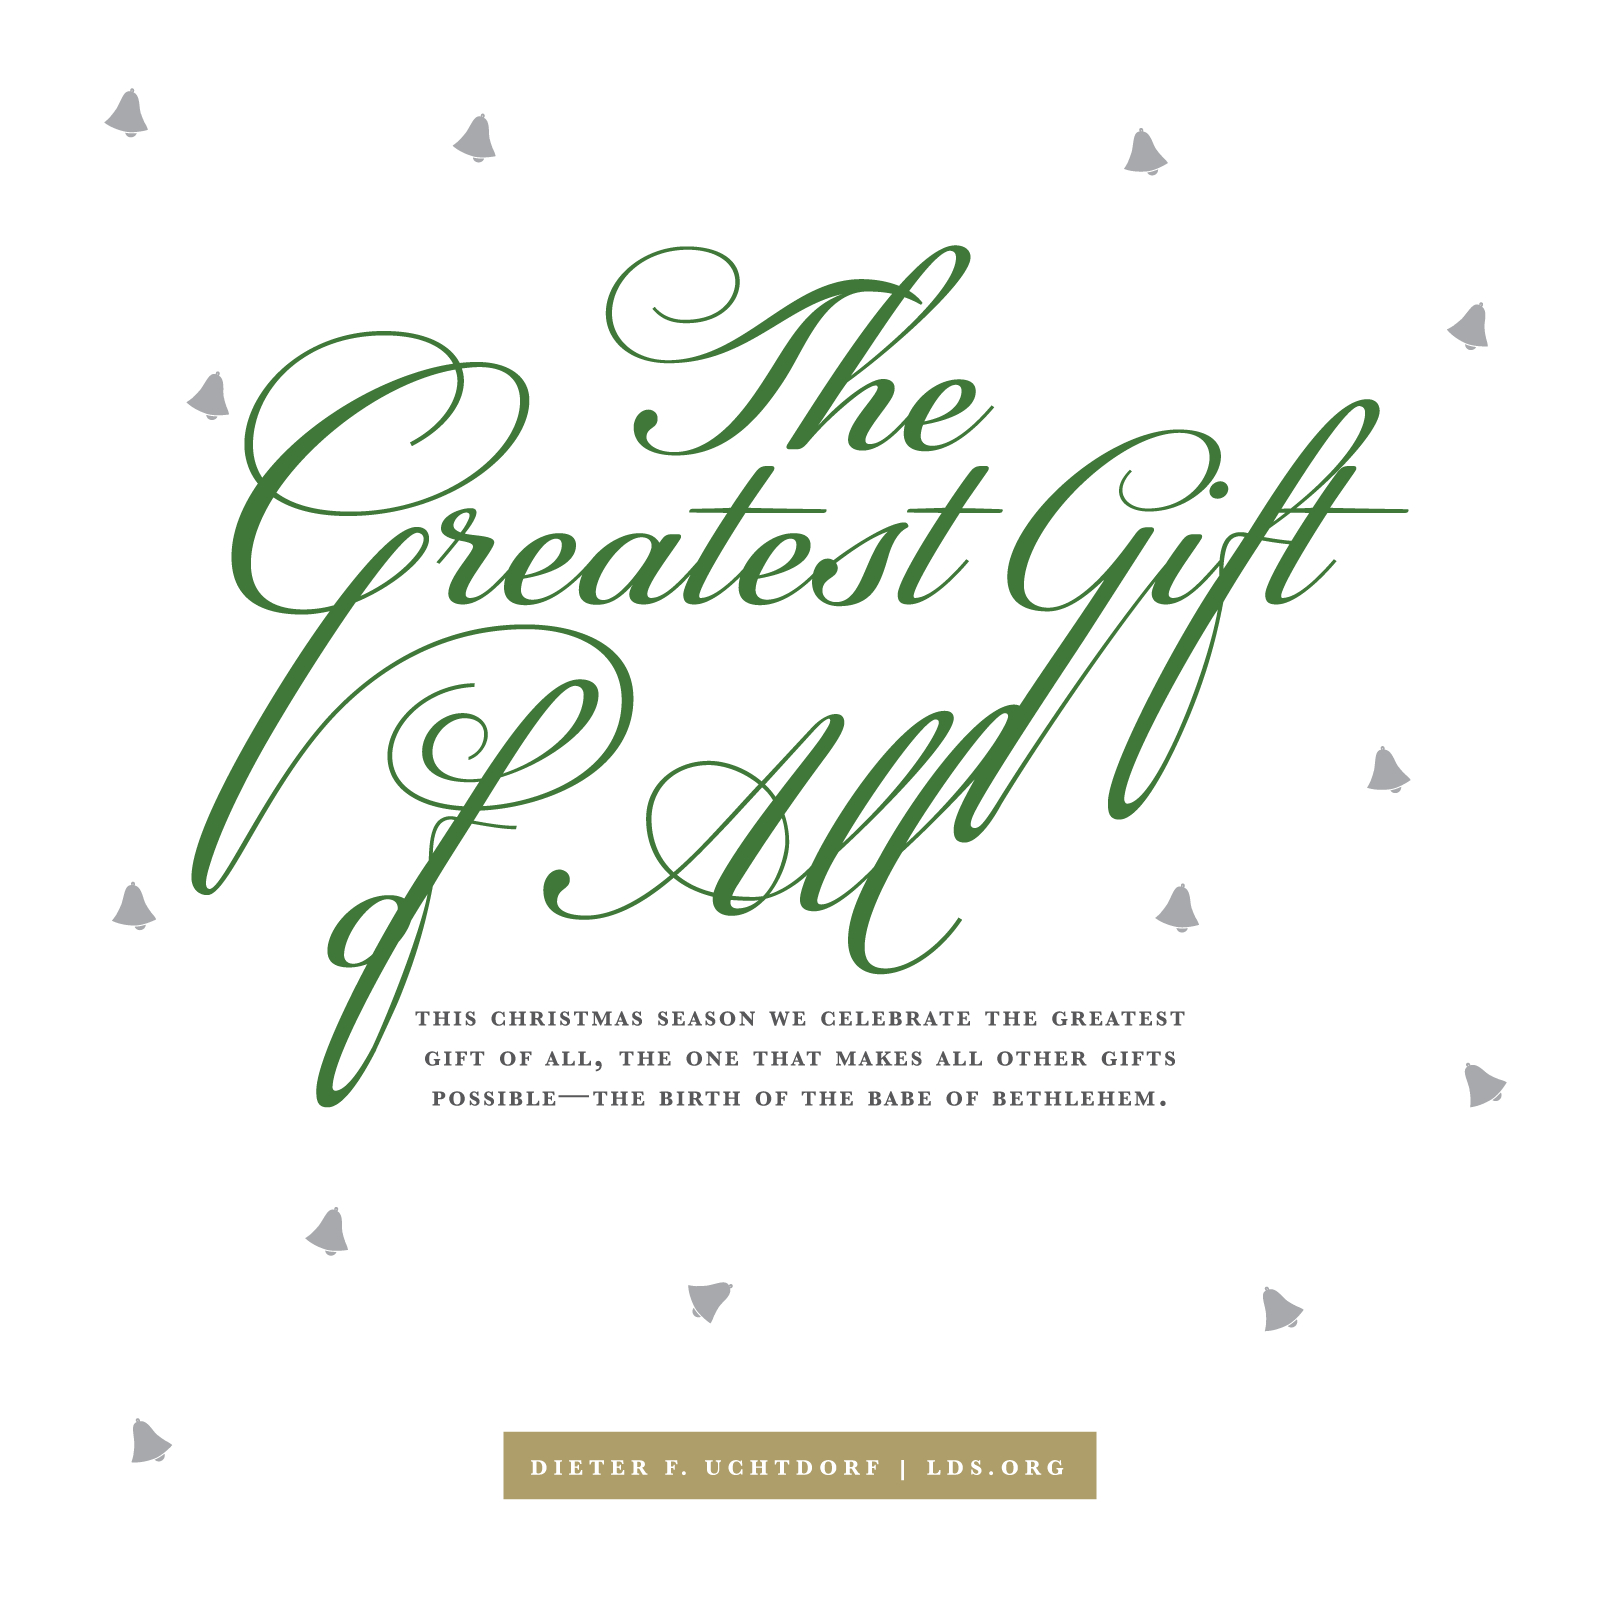 Best Christmas Devotional Ever.The Greatest Gift Of All